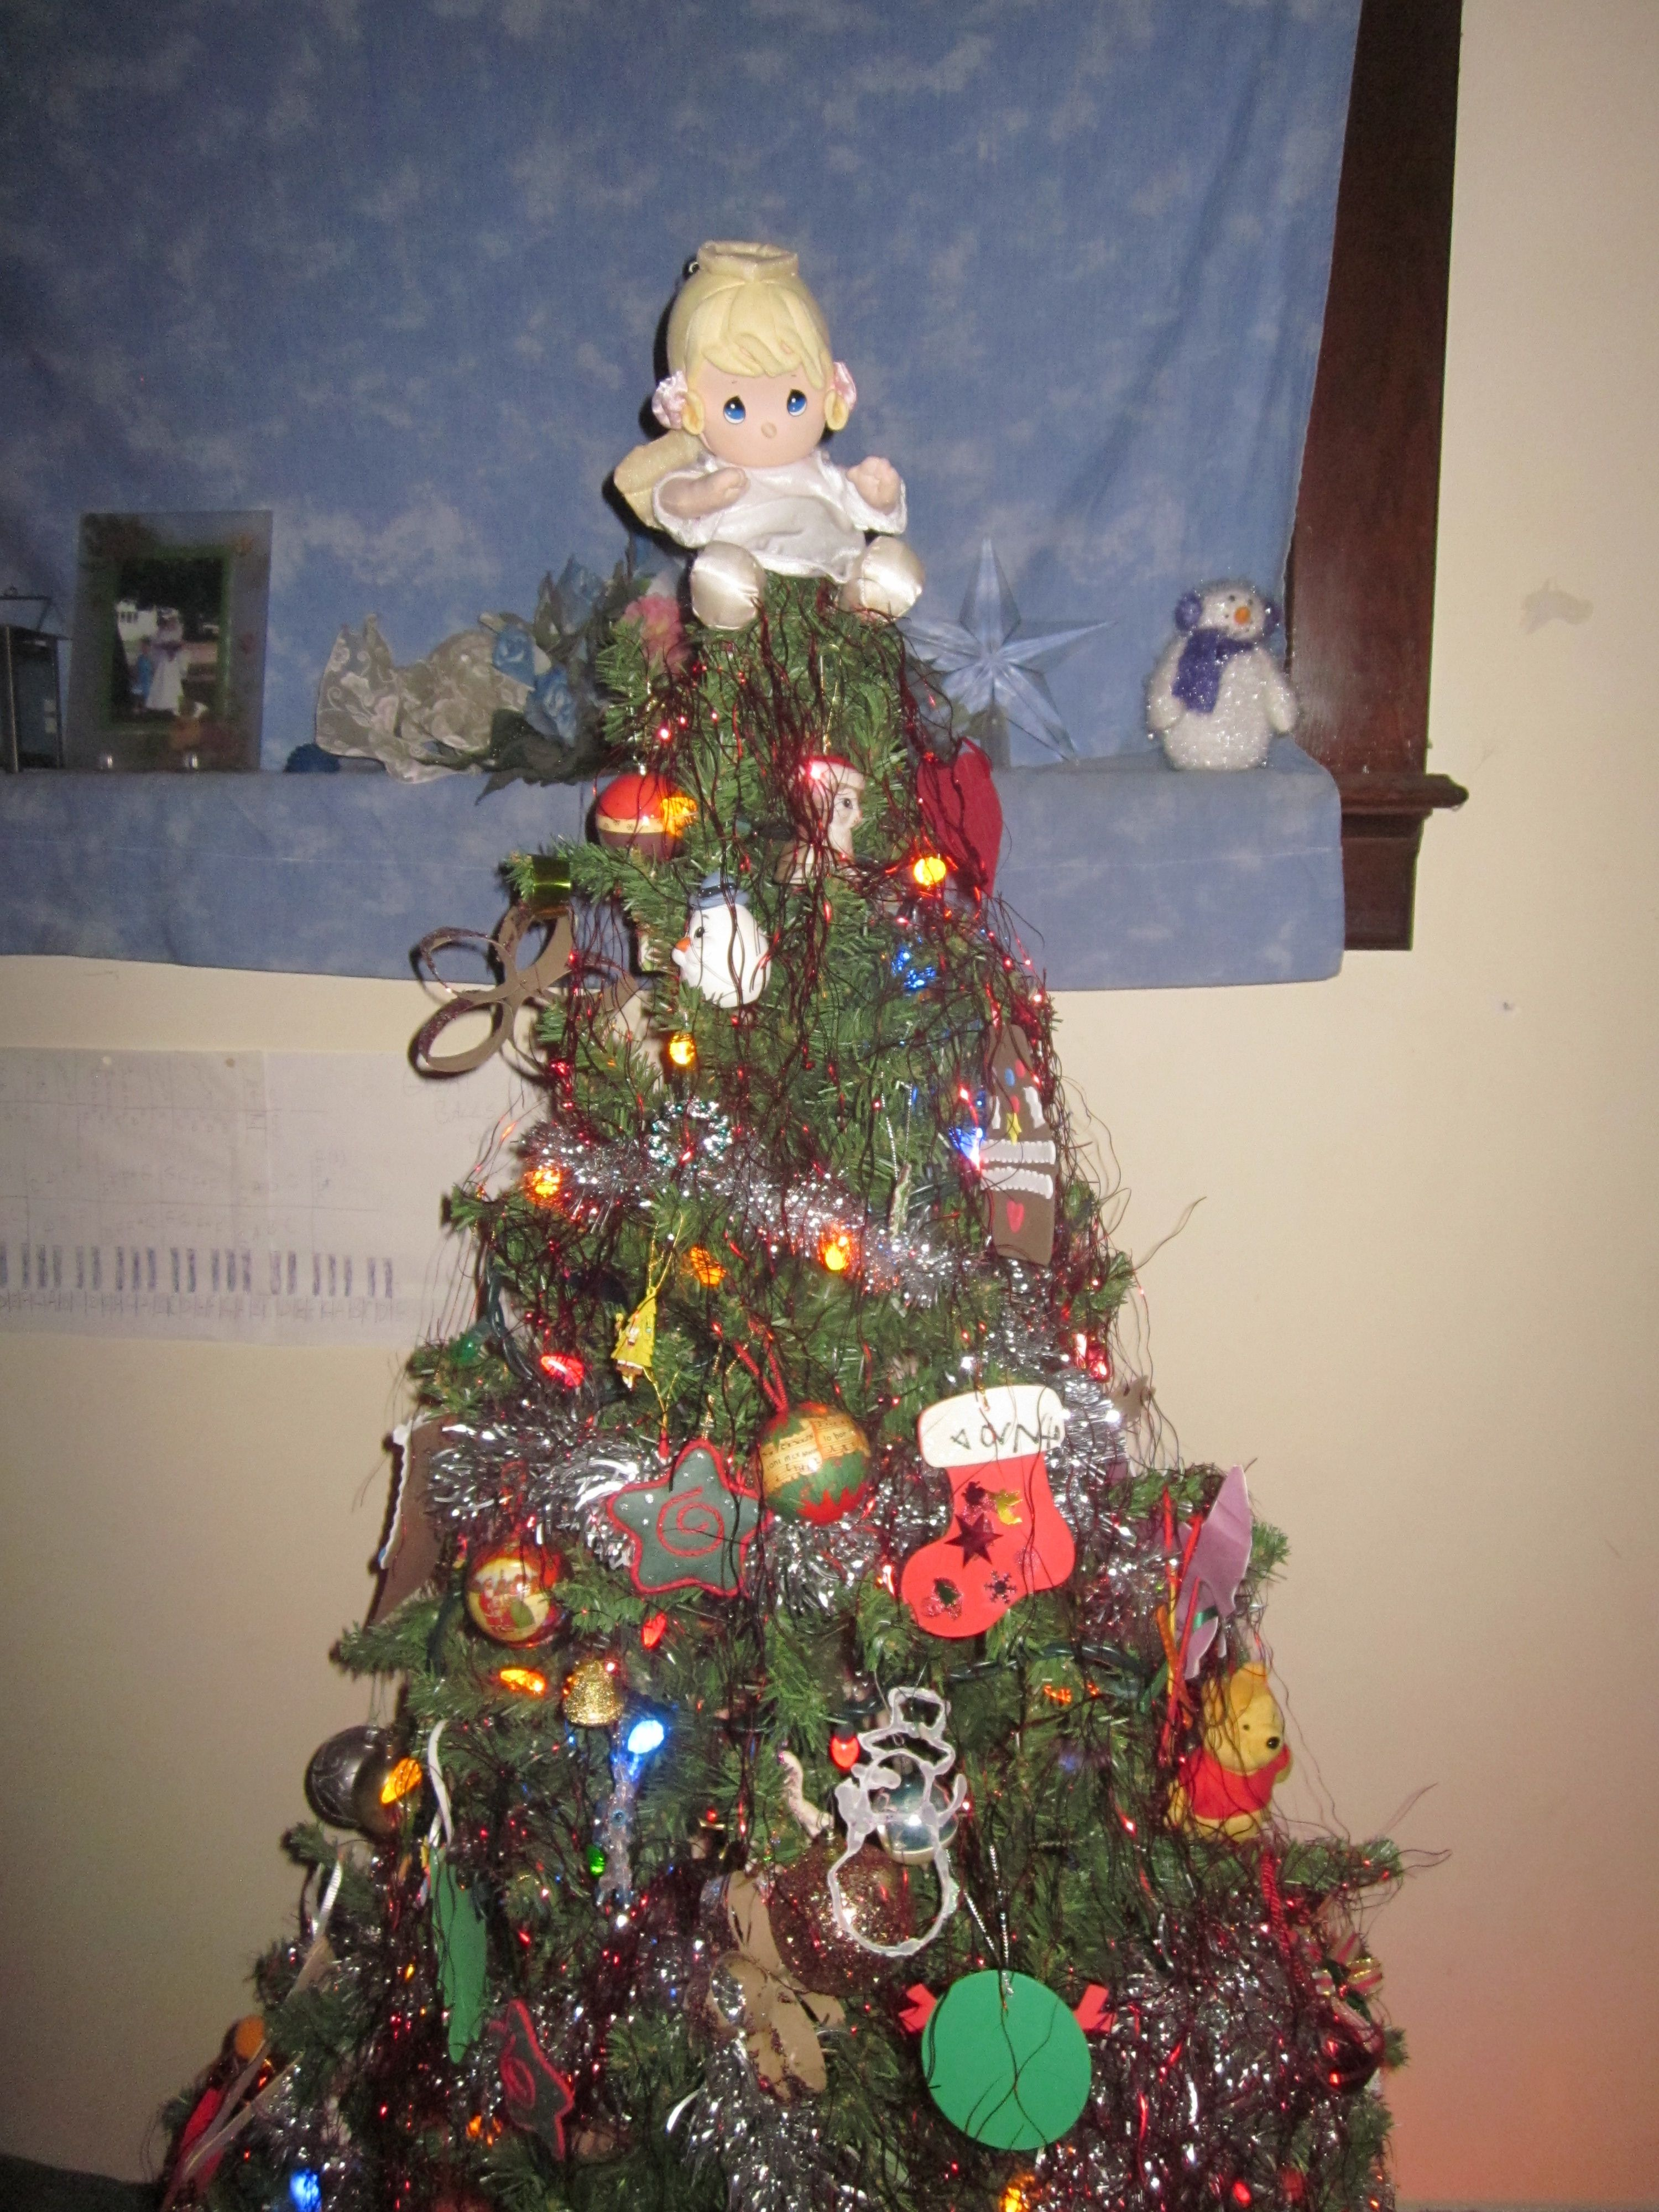 Mel-Ody stepped in to be the angel at top of tree